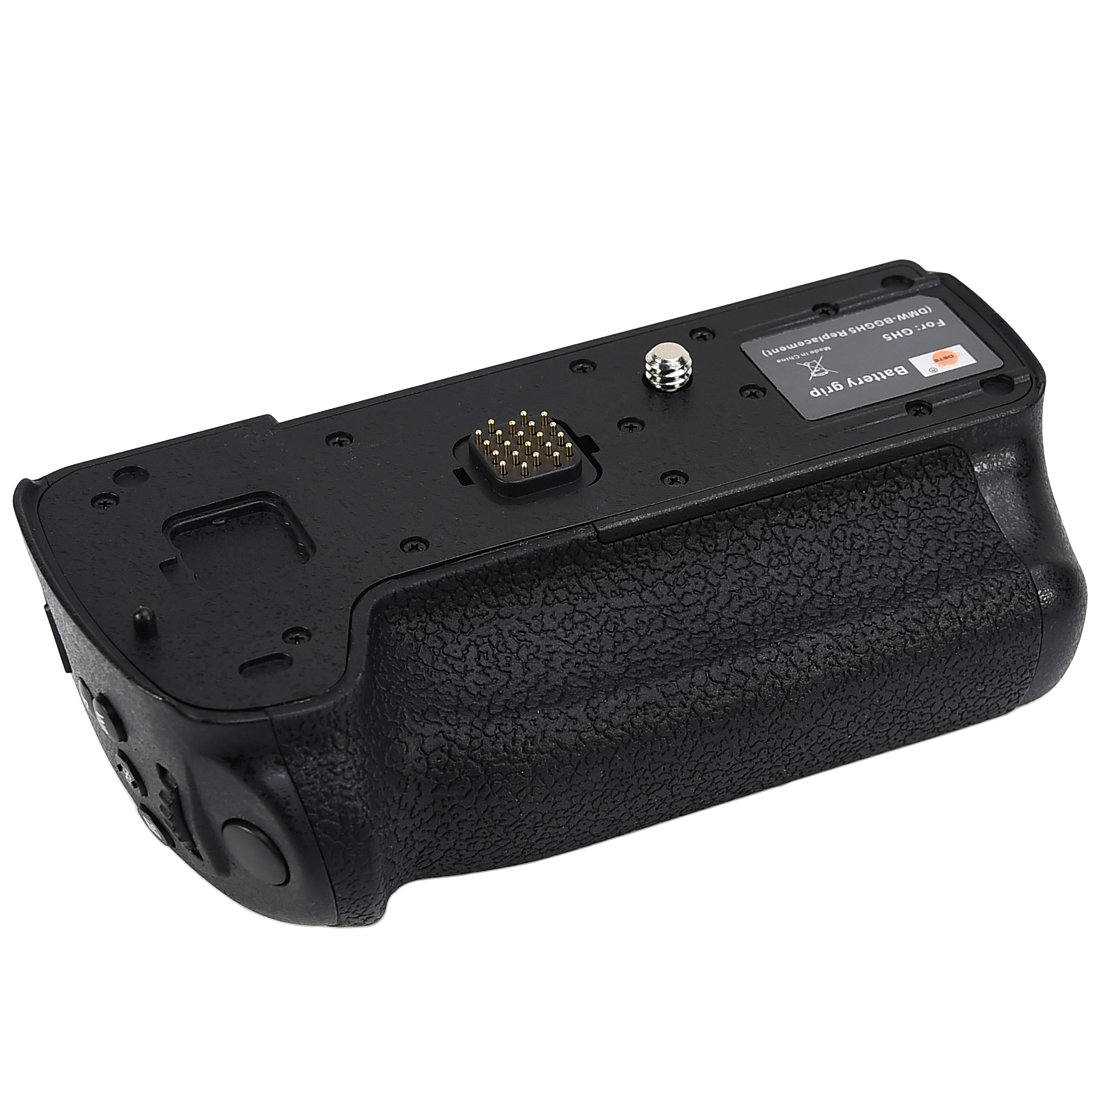 DSTE Pro DMW-BGGH5 DMW-BGGH5GK Vertical Composition Battery Grip for Panasonic GH5 GH5S Lumix GH5 Digital Camera as DMW-BLF19 BLF19E Dst Electron Technological Co. Ltd DB102